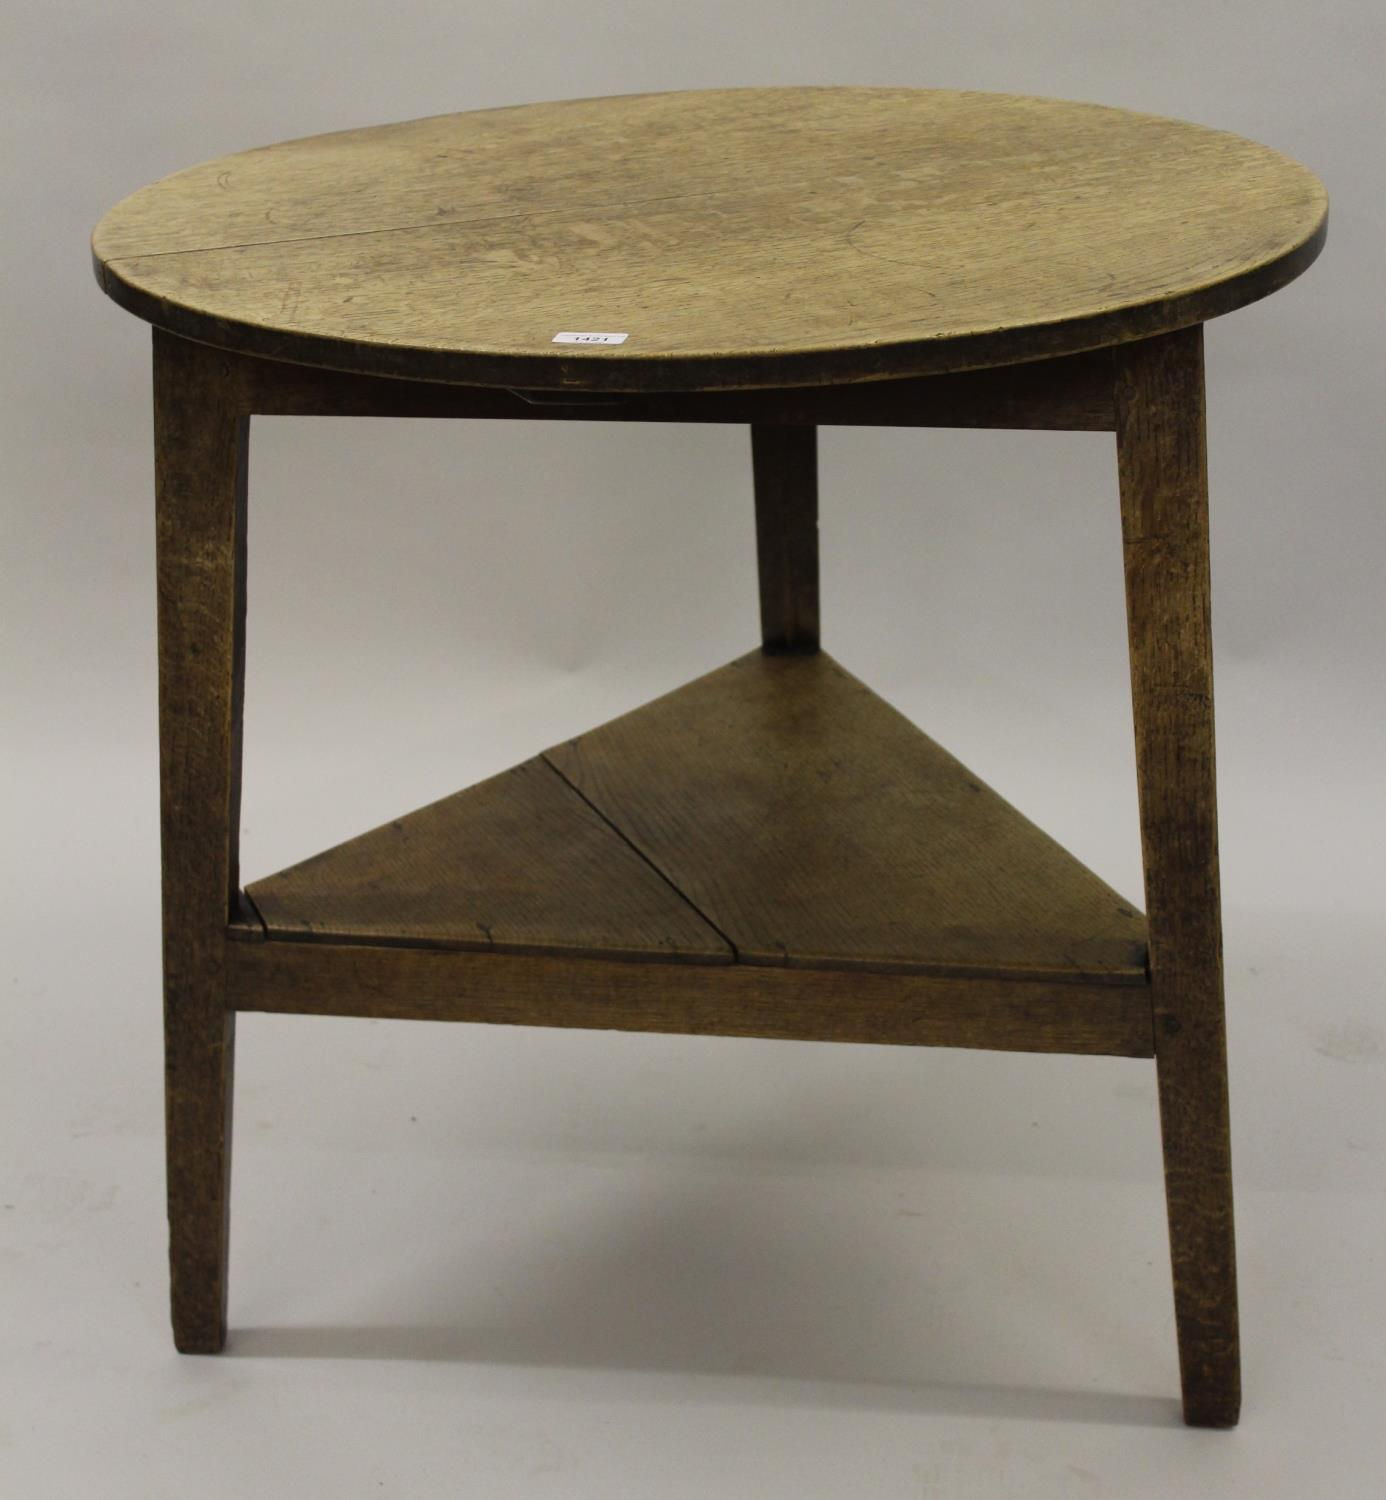 George III oak cricket table, the circular top raised on tapered supports with undertier, 30ins